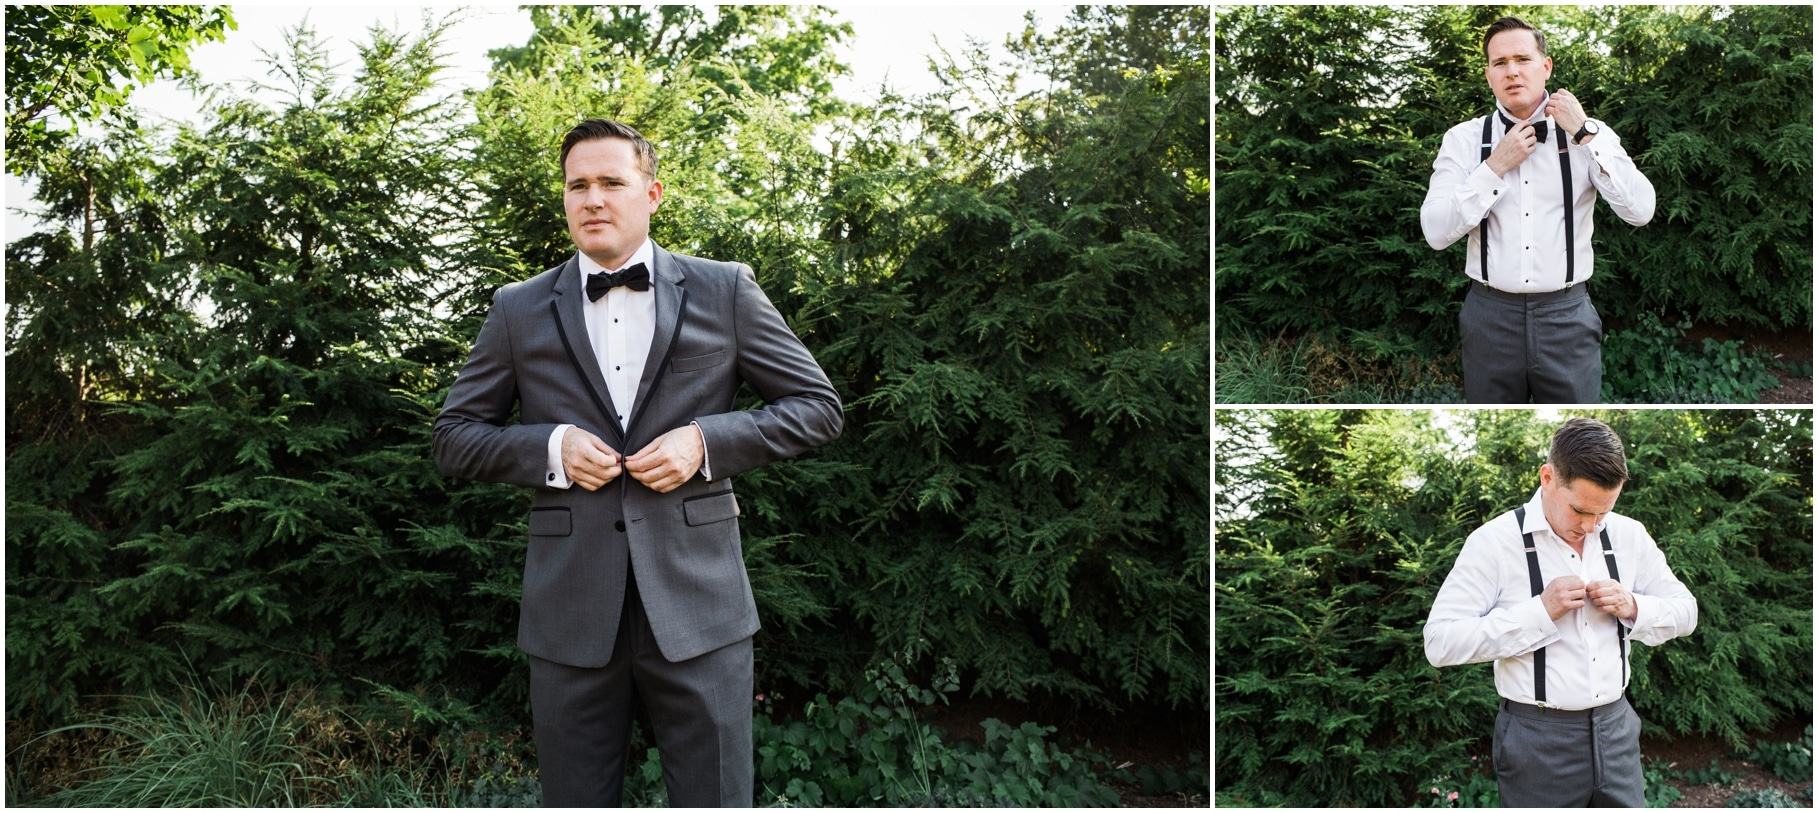 adam lowe photography, columbus, ohio, midwest, photographer, style, love, stylish, fpc, franklin park conservatory, wedding photographer,Jan Kish la petite fluer, flowerman, sadie baby sweets, martini affair, berta bridal, paris by debra moreland, generation tux, revelry, azazie, kate mari, badgley mischka